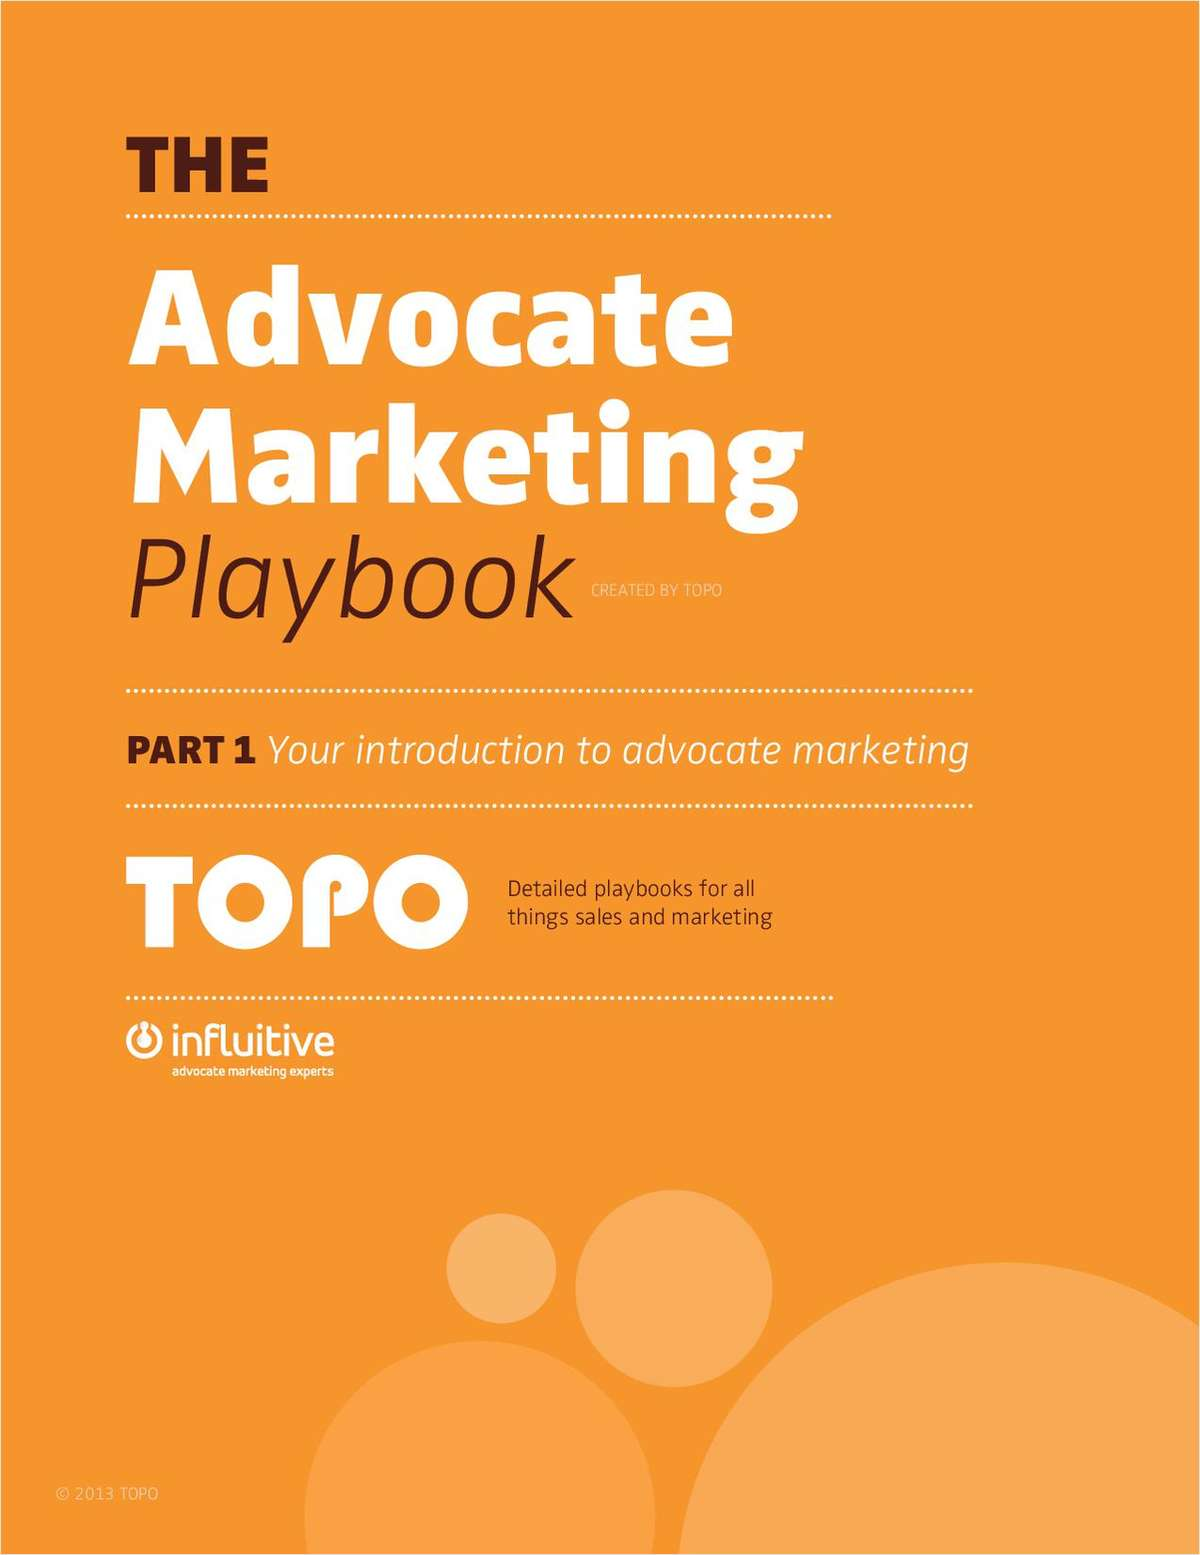 The Advocate Marketing Playbook